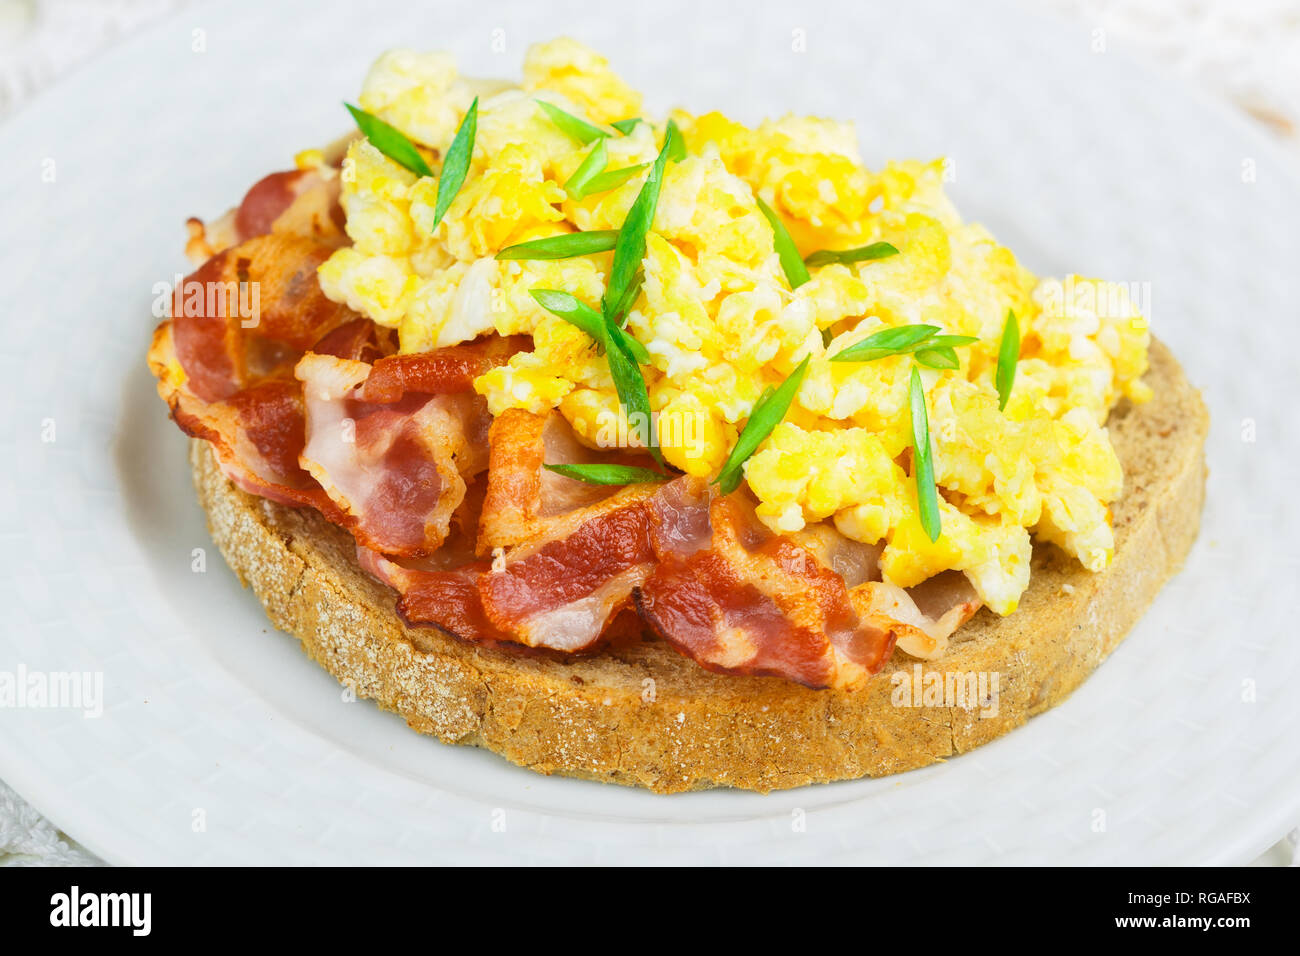 Bread toast with scrambled eggs, fried bacon and green onions close-up.  Delicious breakfast. Brunch. Selective focus - Stock Image